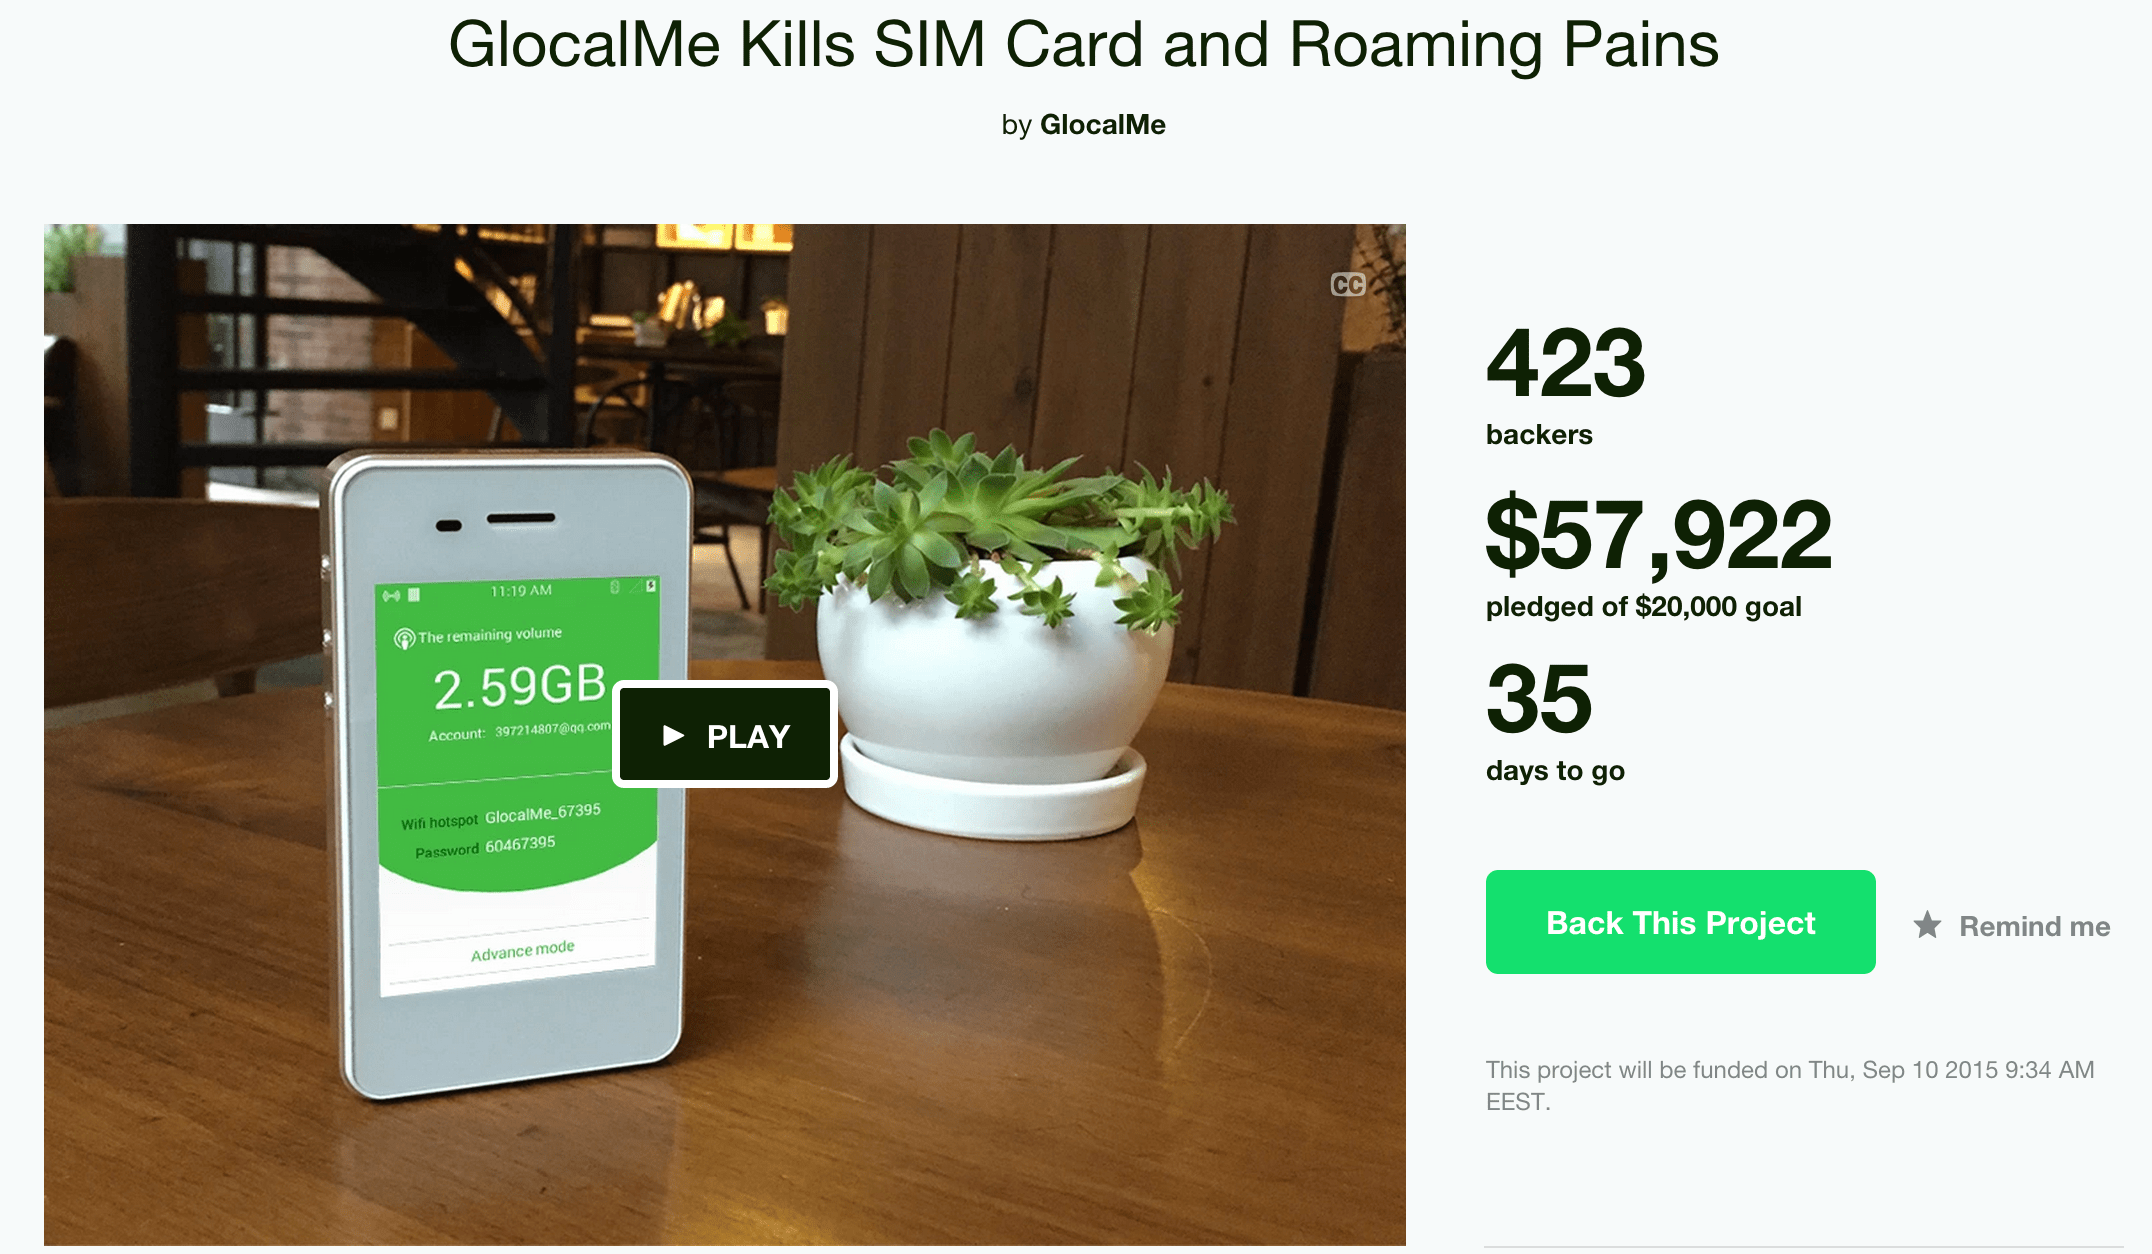 Is GlocalMe/uCloudlink a fake company that's tricking consumers and kickstarter?